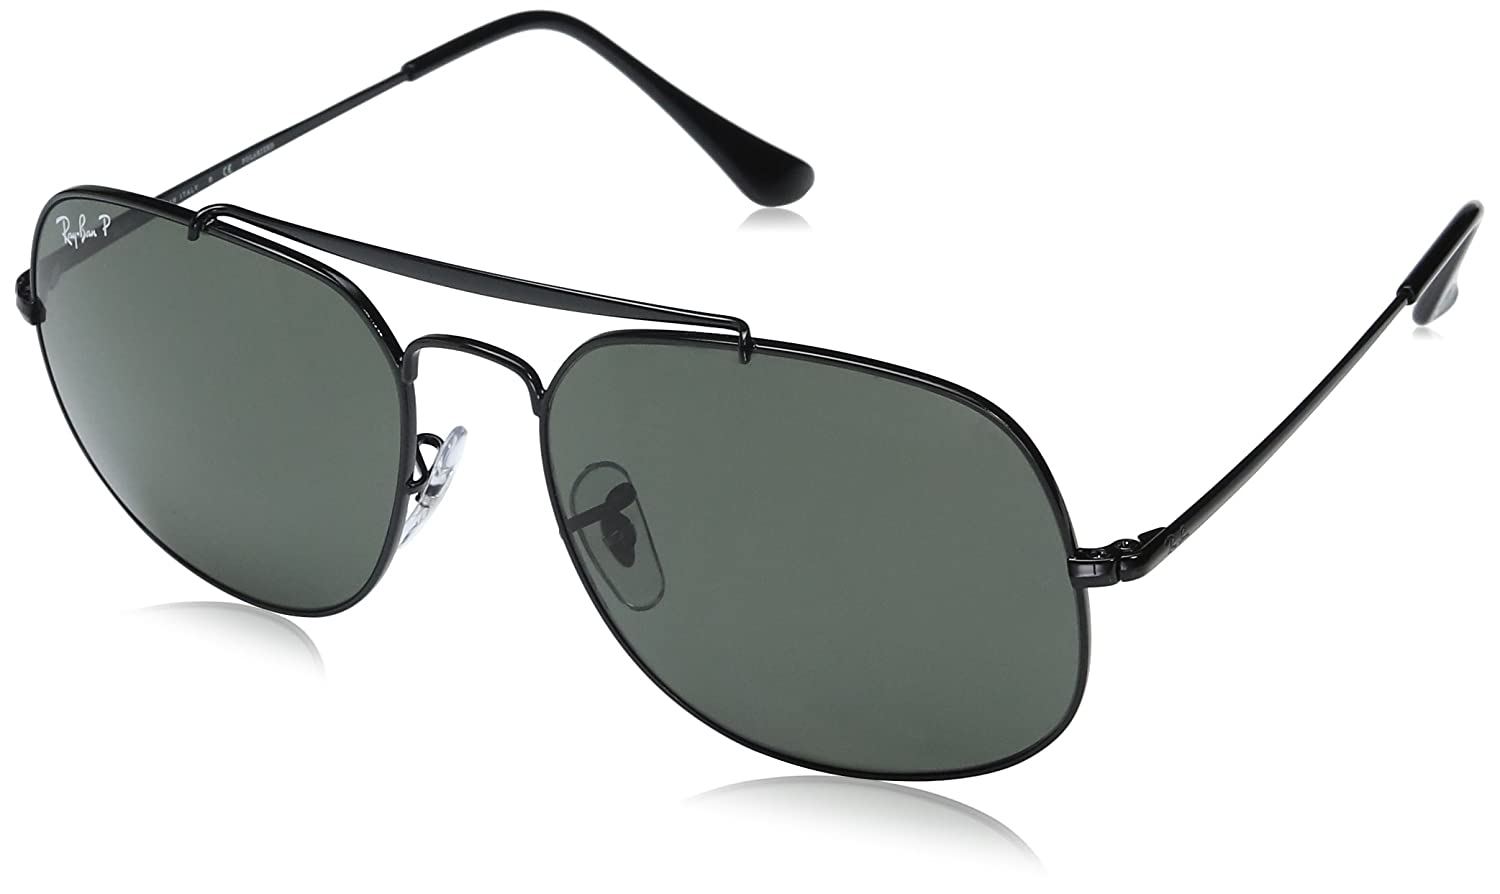 42f883f504 Amazon.com  Ray-Ban Men s Steel Man Sunglass Polarized Square